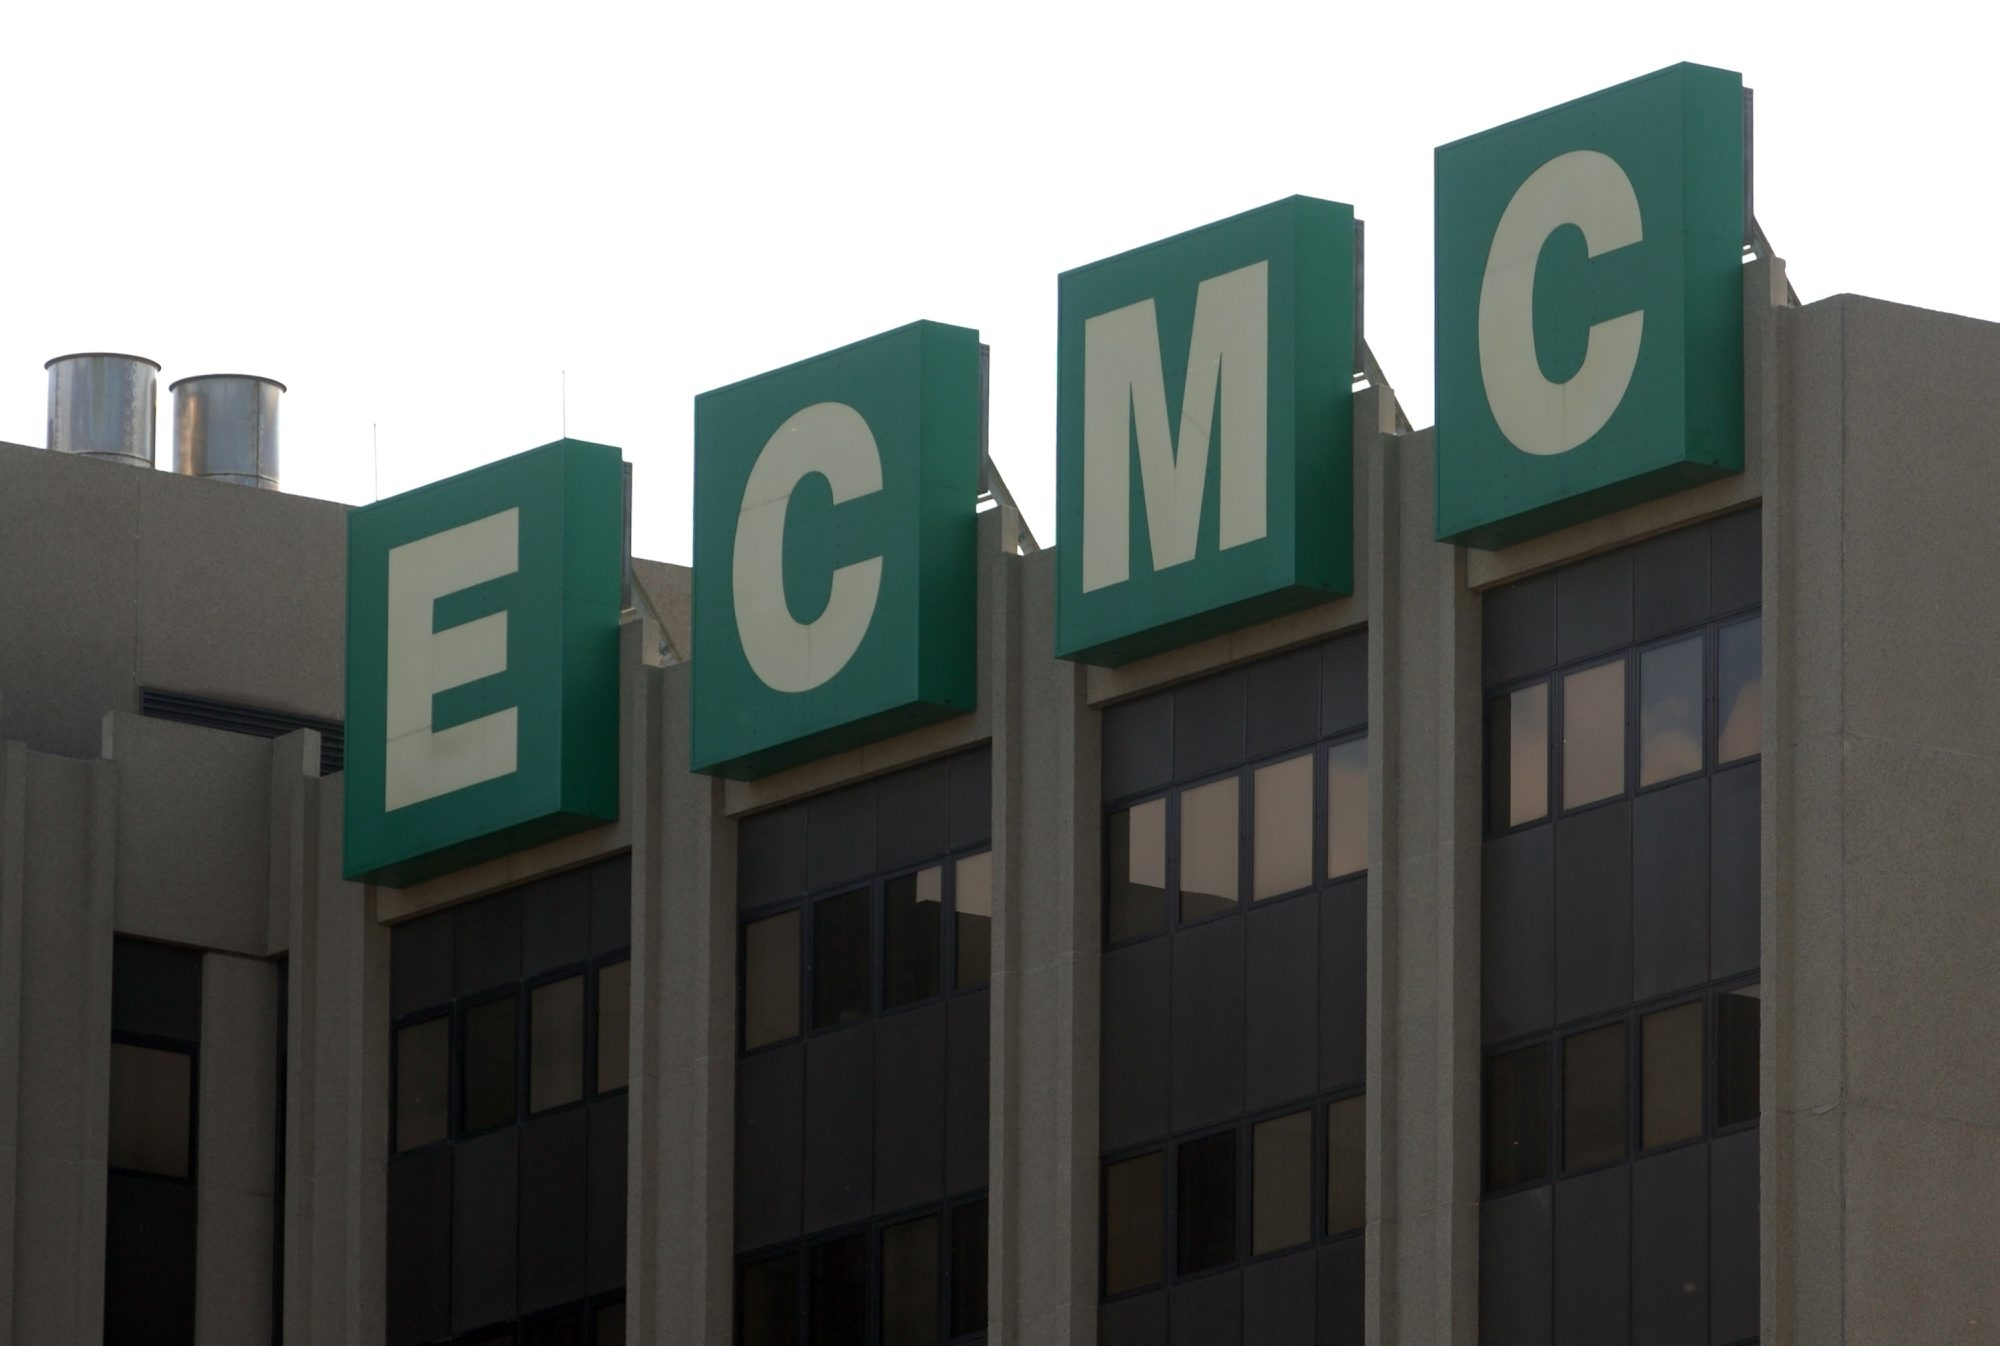 Locally, ECMC receives the highest average payments for all five commonly performed procedures.